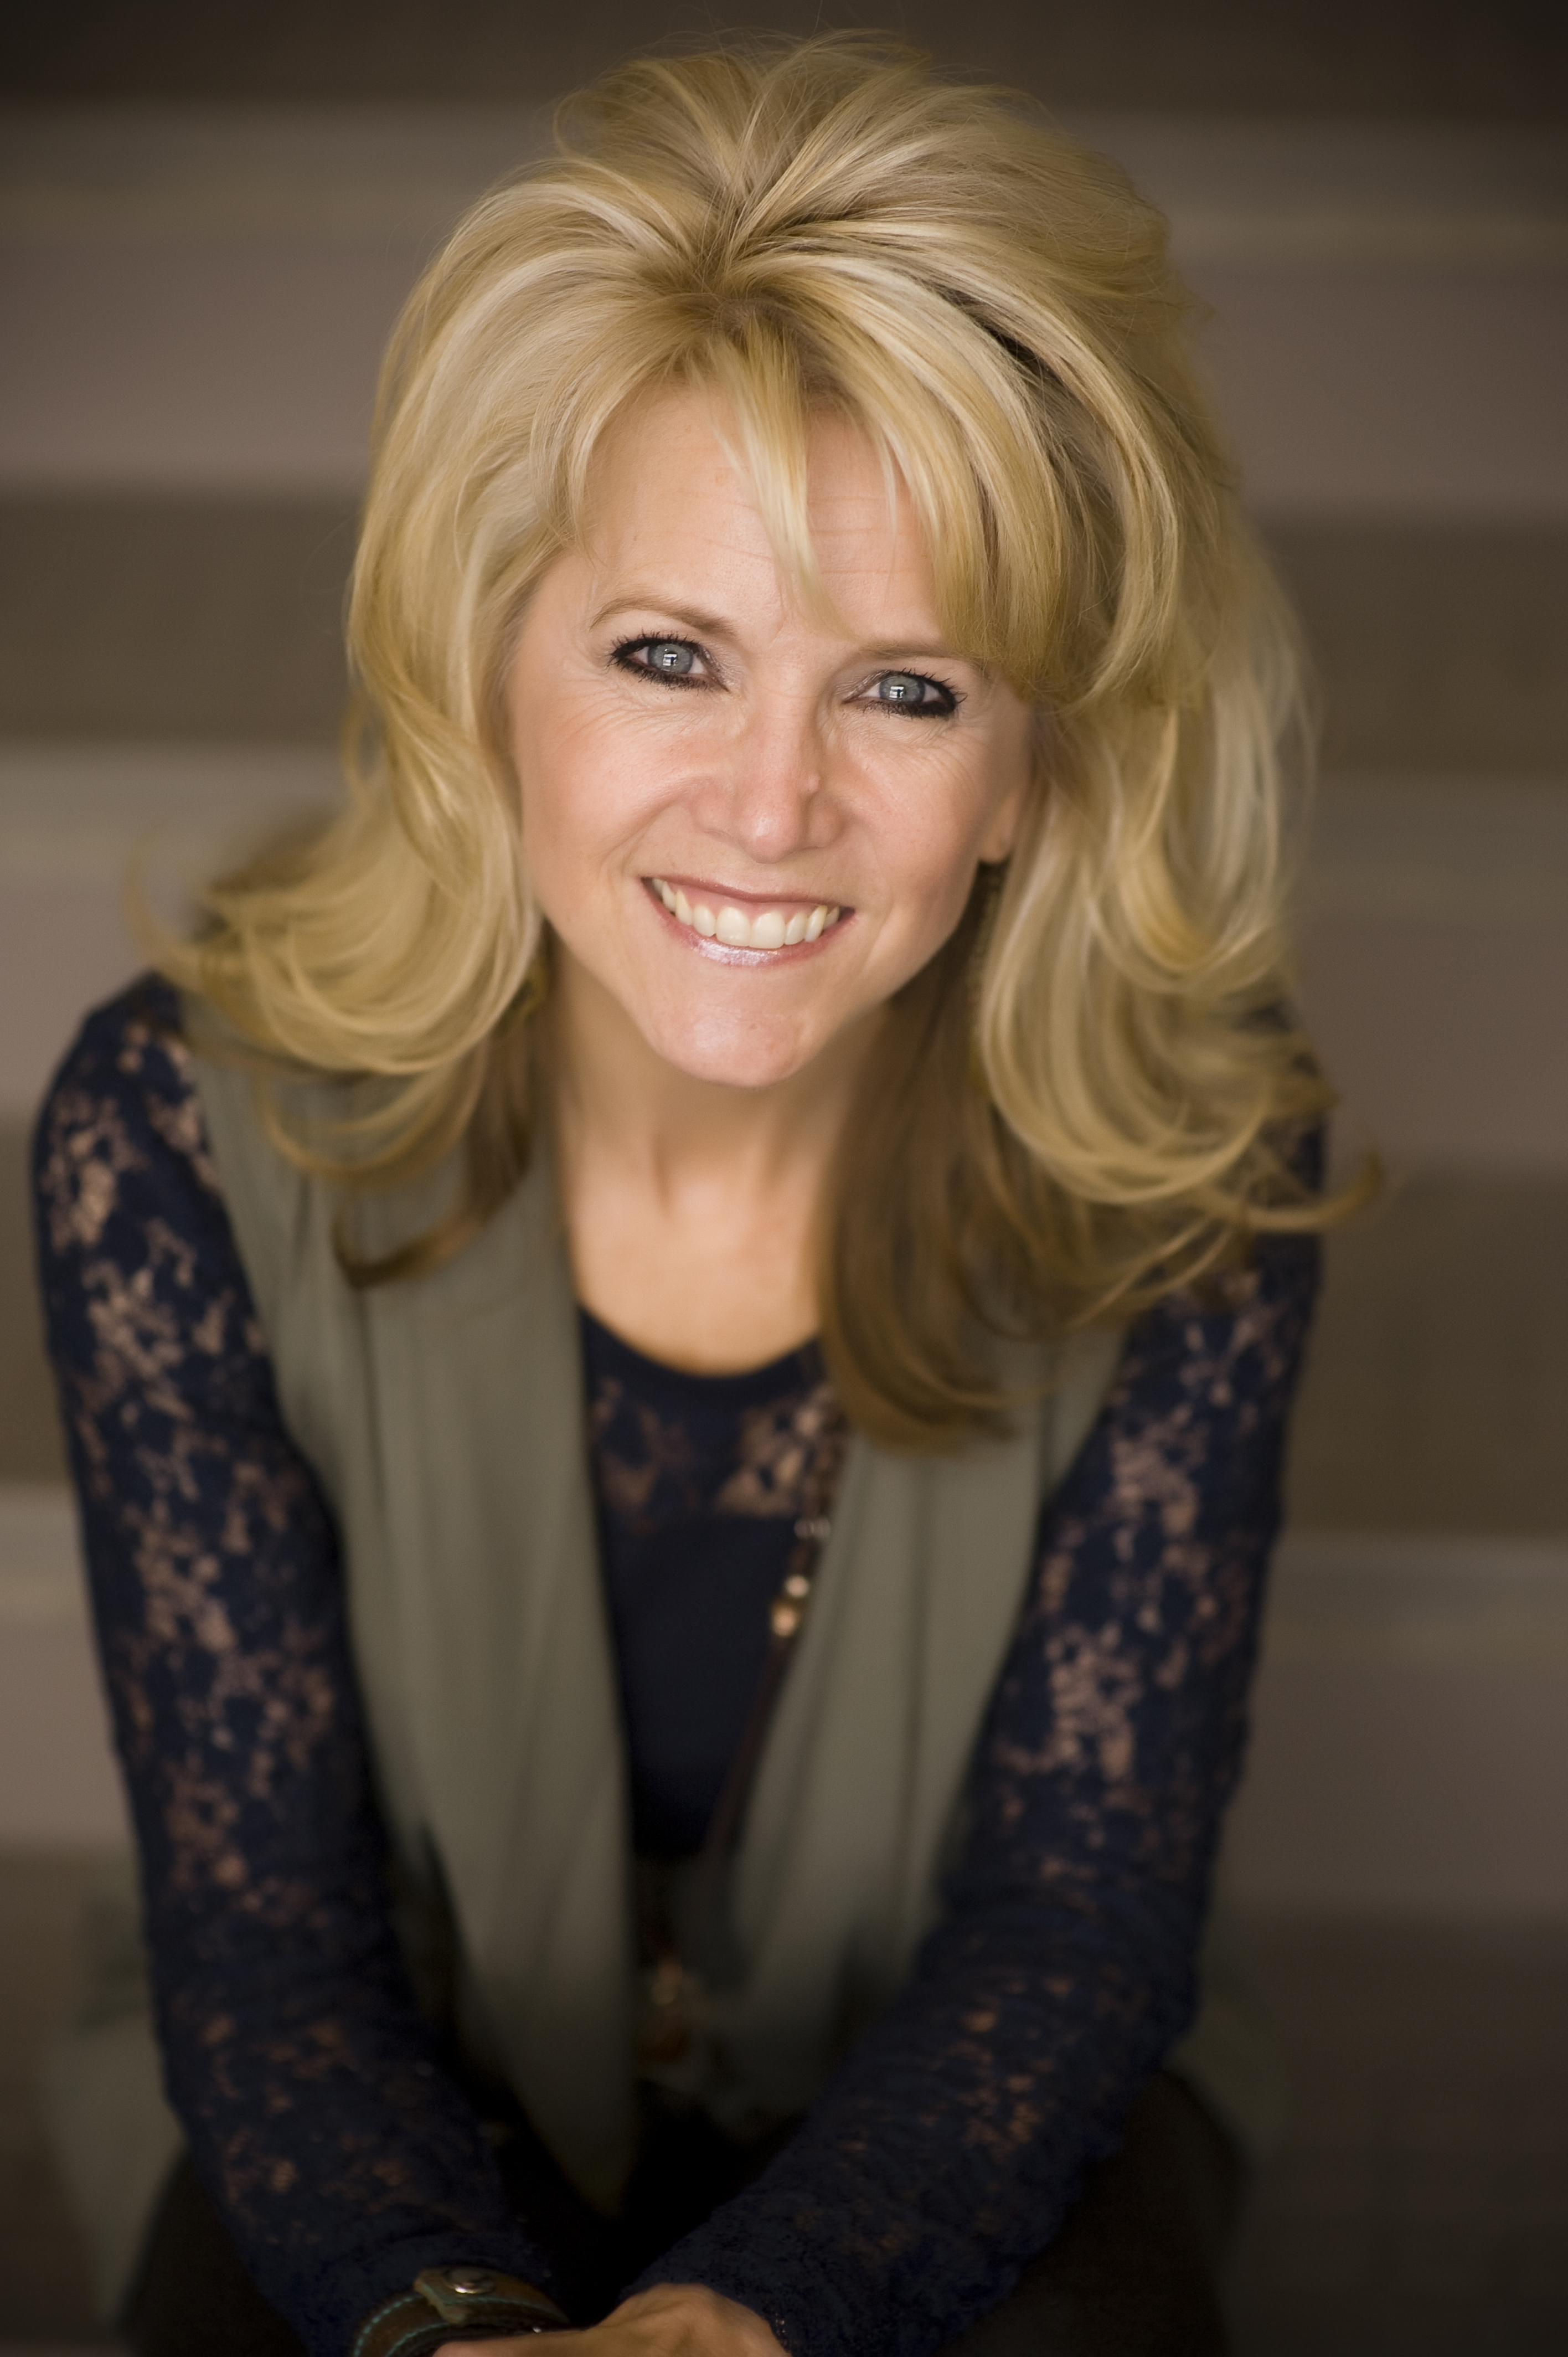 Susie Larson as featured on Jesus Calling podcast